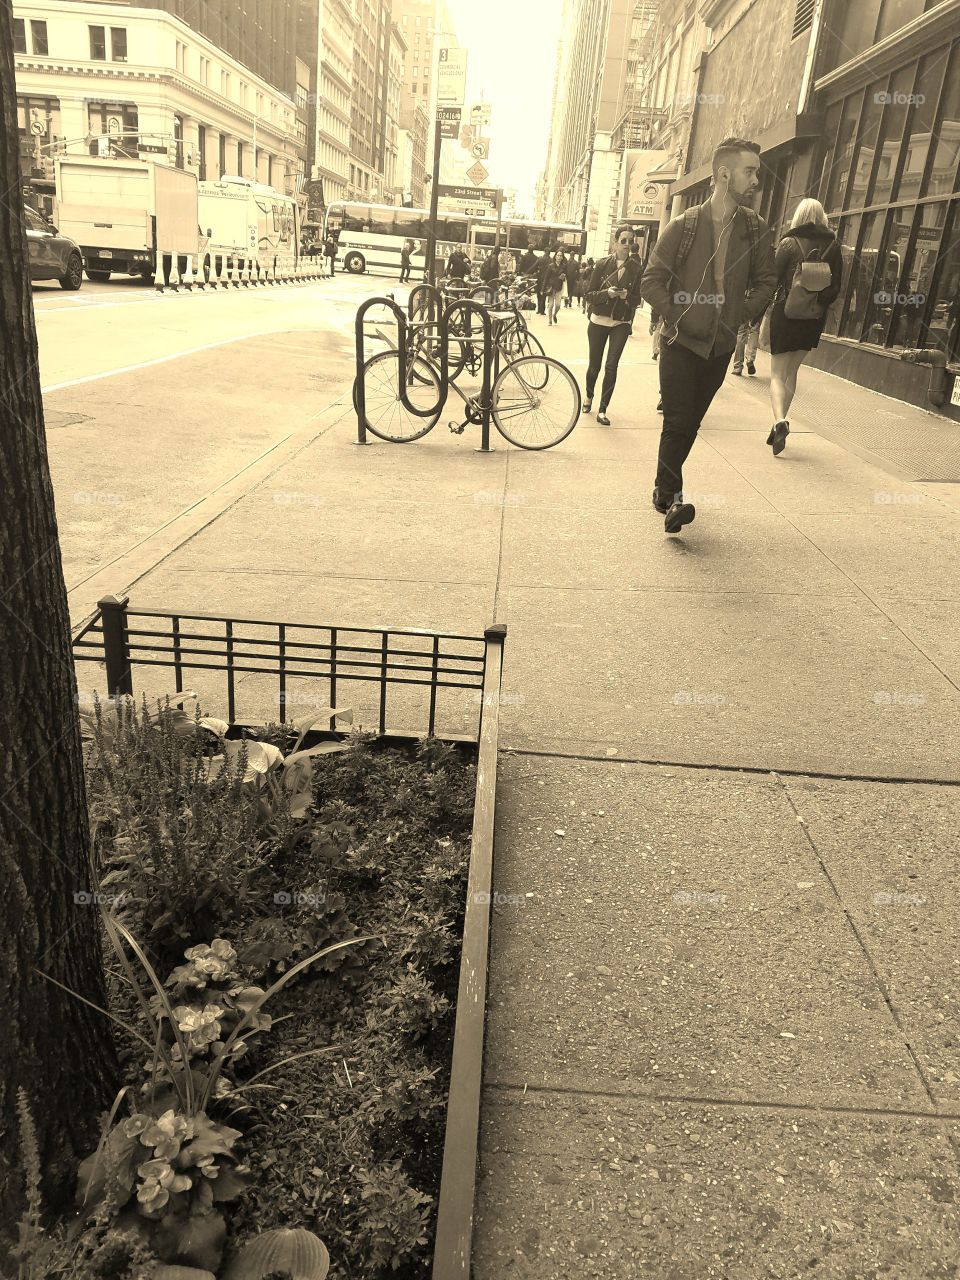 Morning Commute to Work in Manhattan near 6th Avenue and 23rd Street - People Walking - Sepia Filter